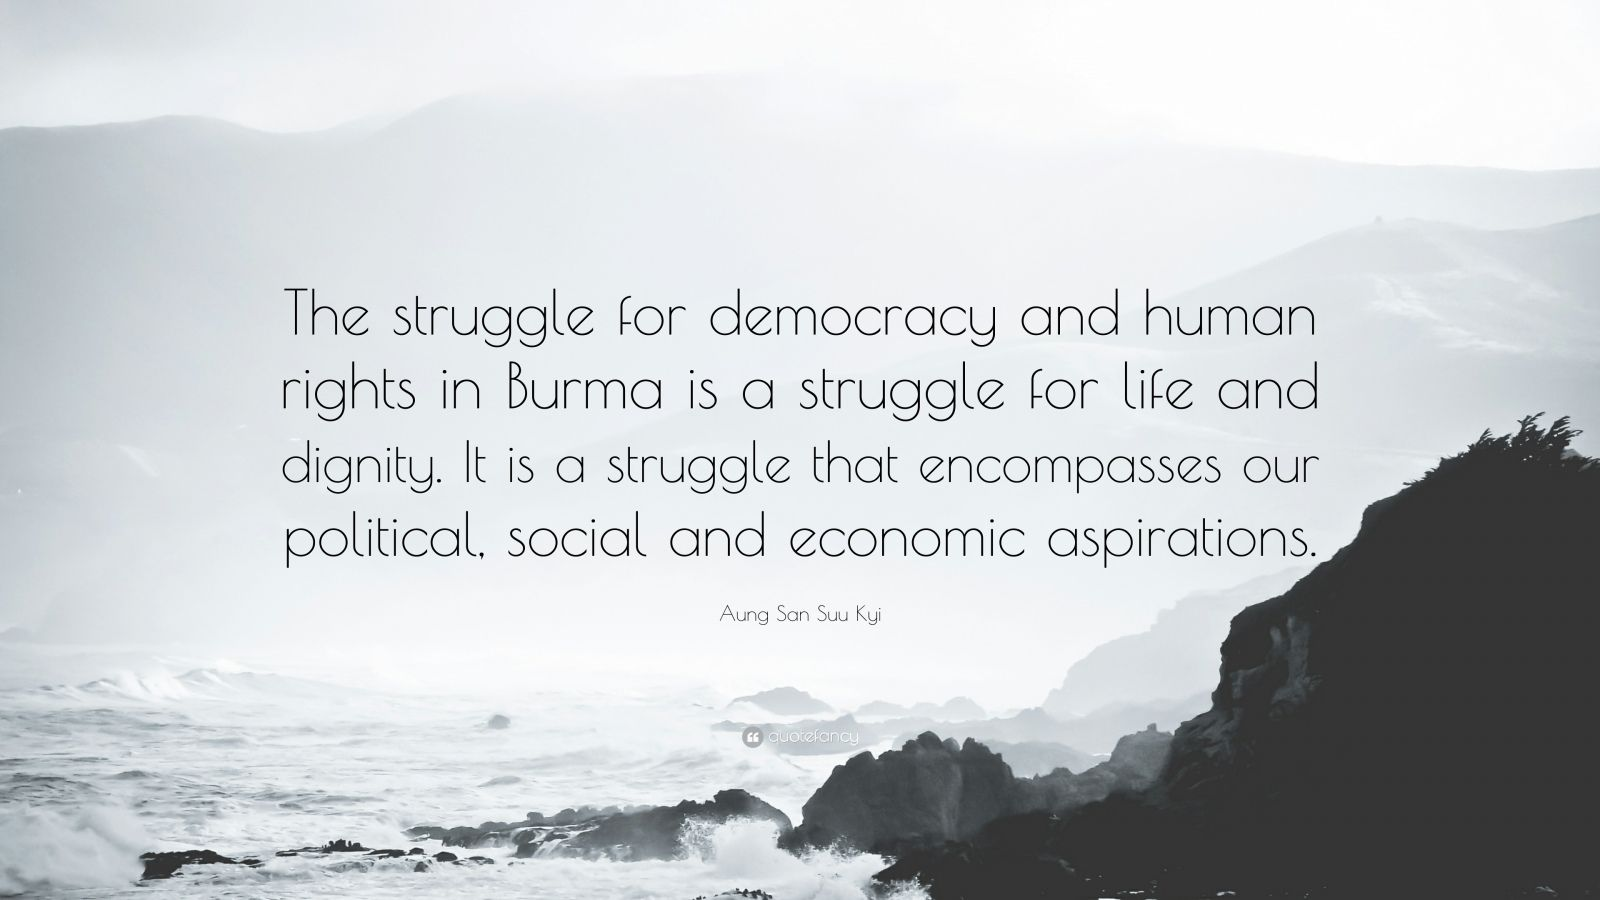 """Aung San Suu Kyi Quote: """"The struggle for democracy and human rights in Burma is a struggle for life and dignity. It is a struggle that encompasses our political, social and economic aspirations."""""""